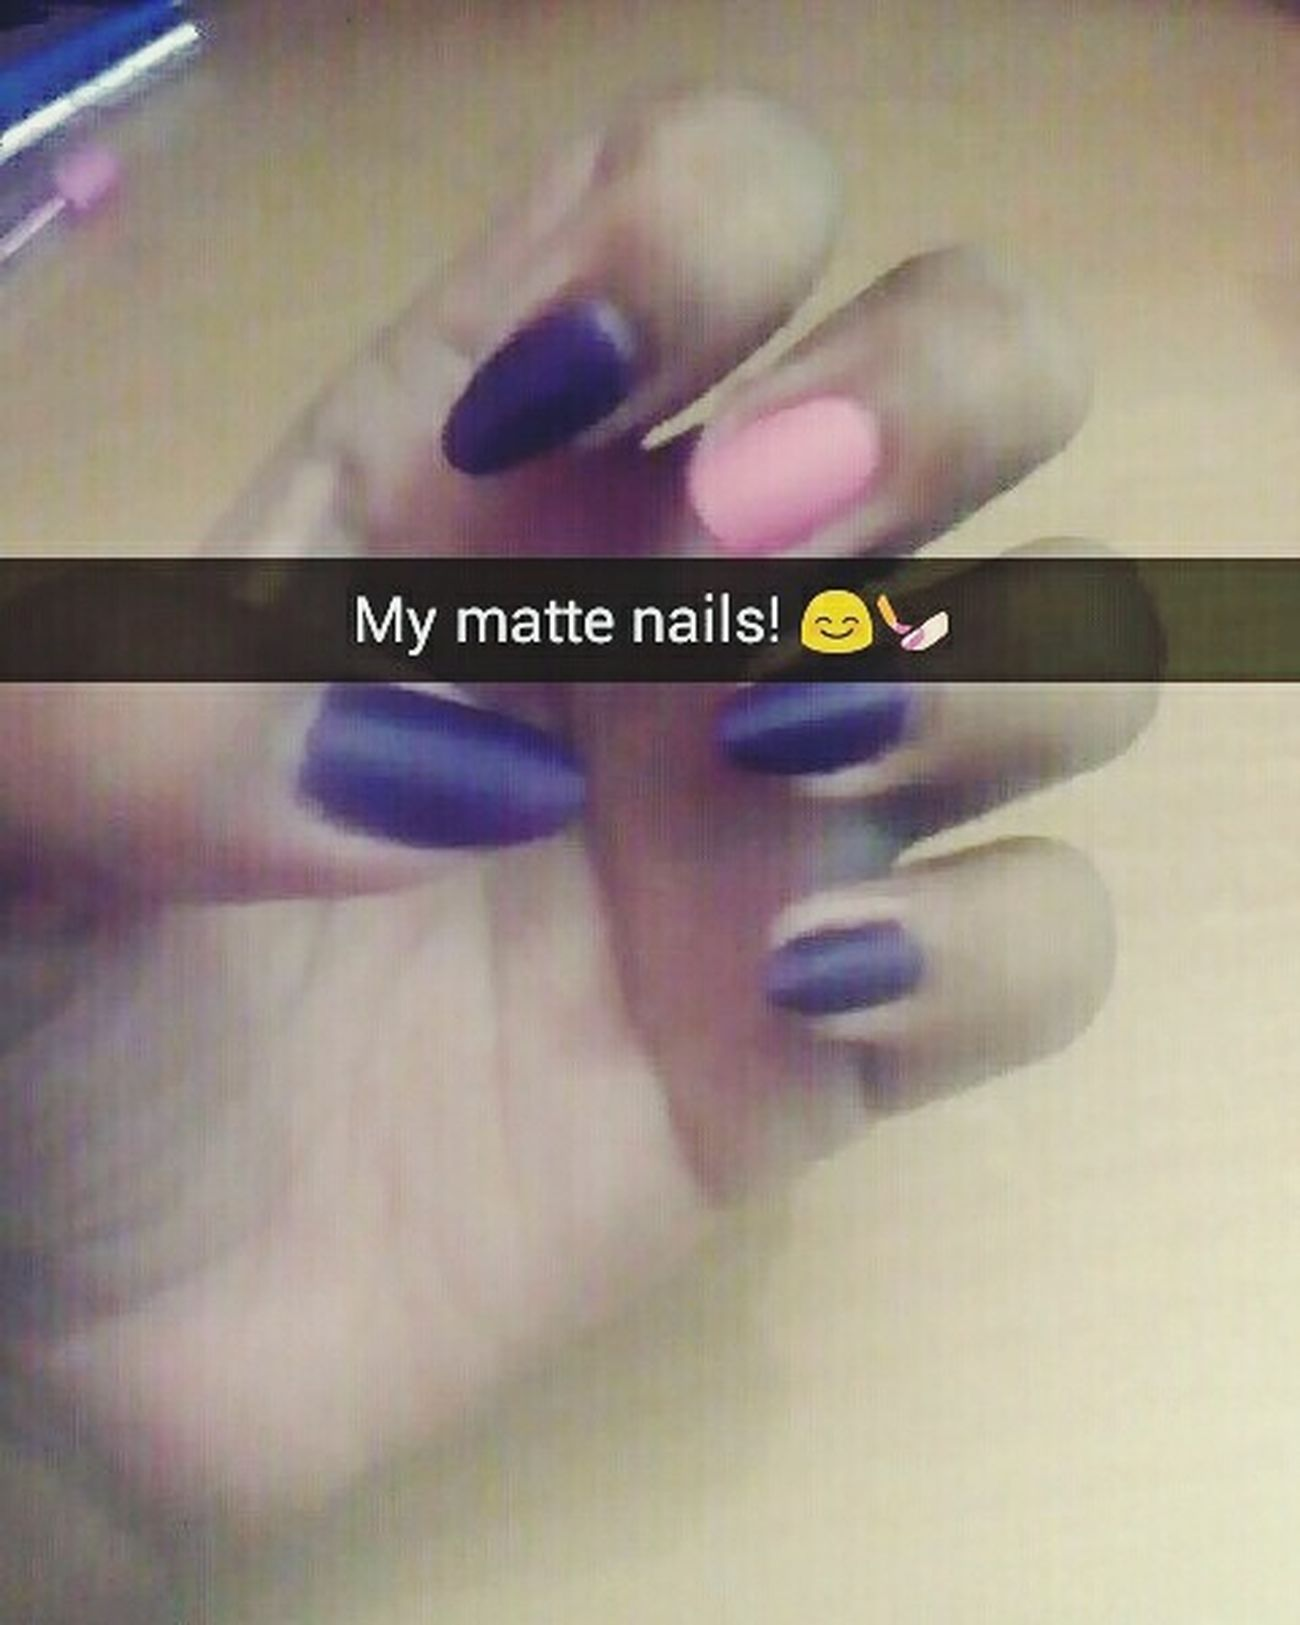 Matte Nailpolish💅 Mattnails Darkpurple Babypink My Obsession❤ Loveit♥ Nailpolishaddict Love My Nails ❤